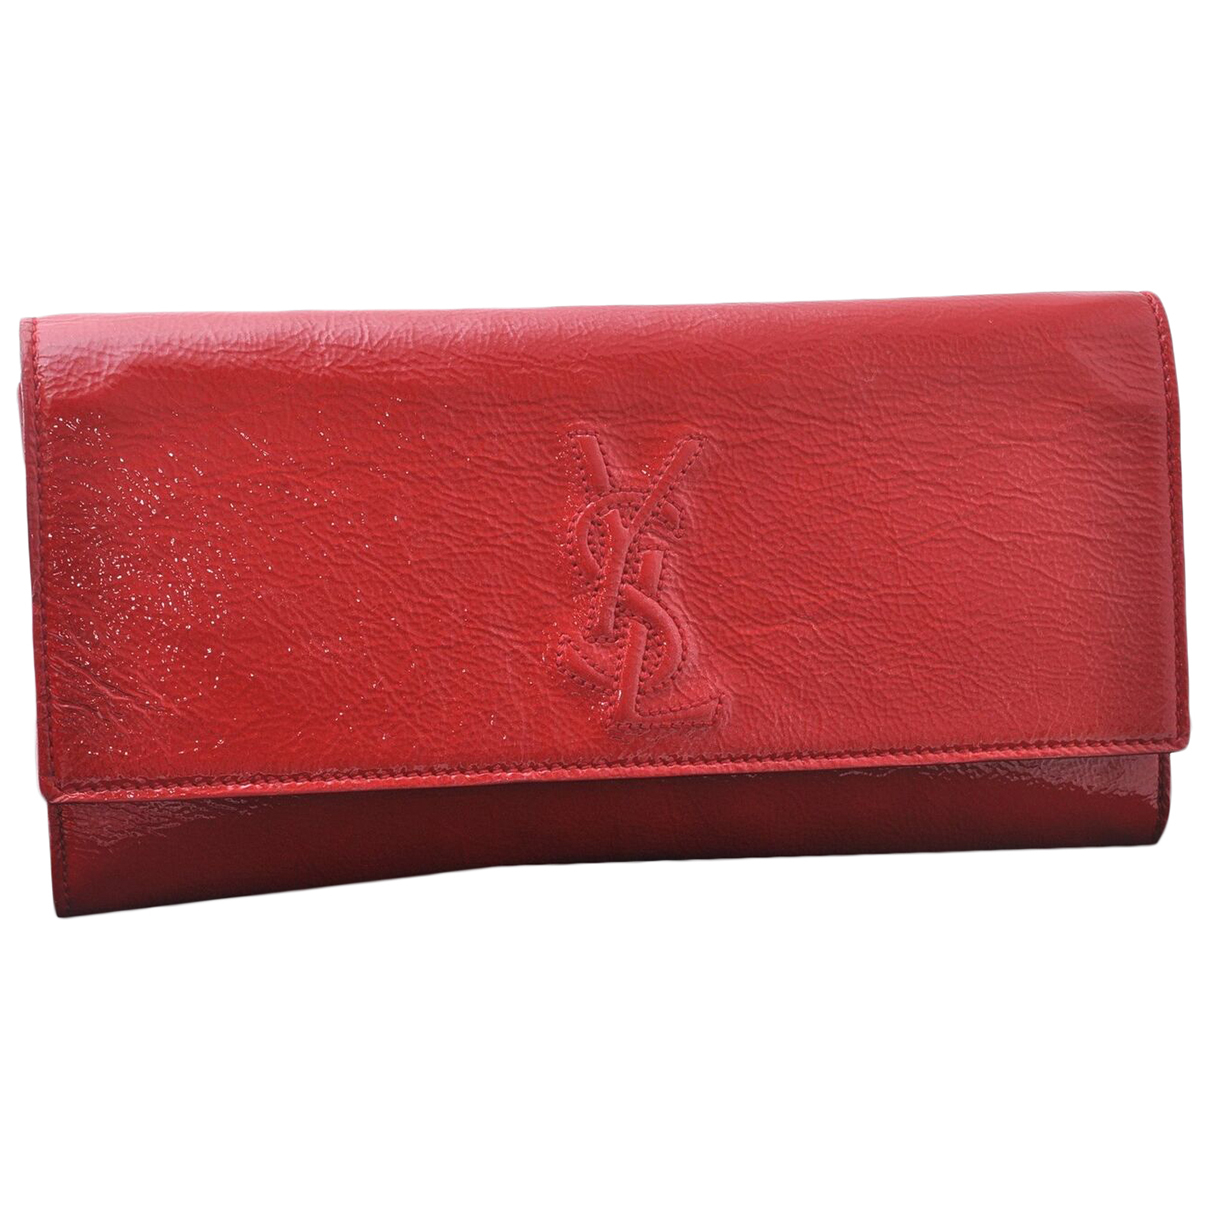 Yves Saint Laurent N Red Patent leather Clutch bag for Women N